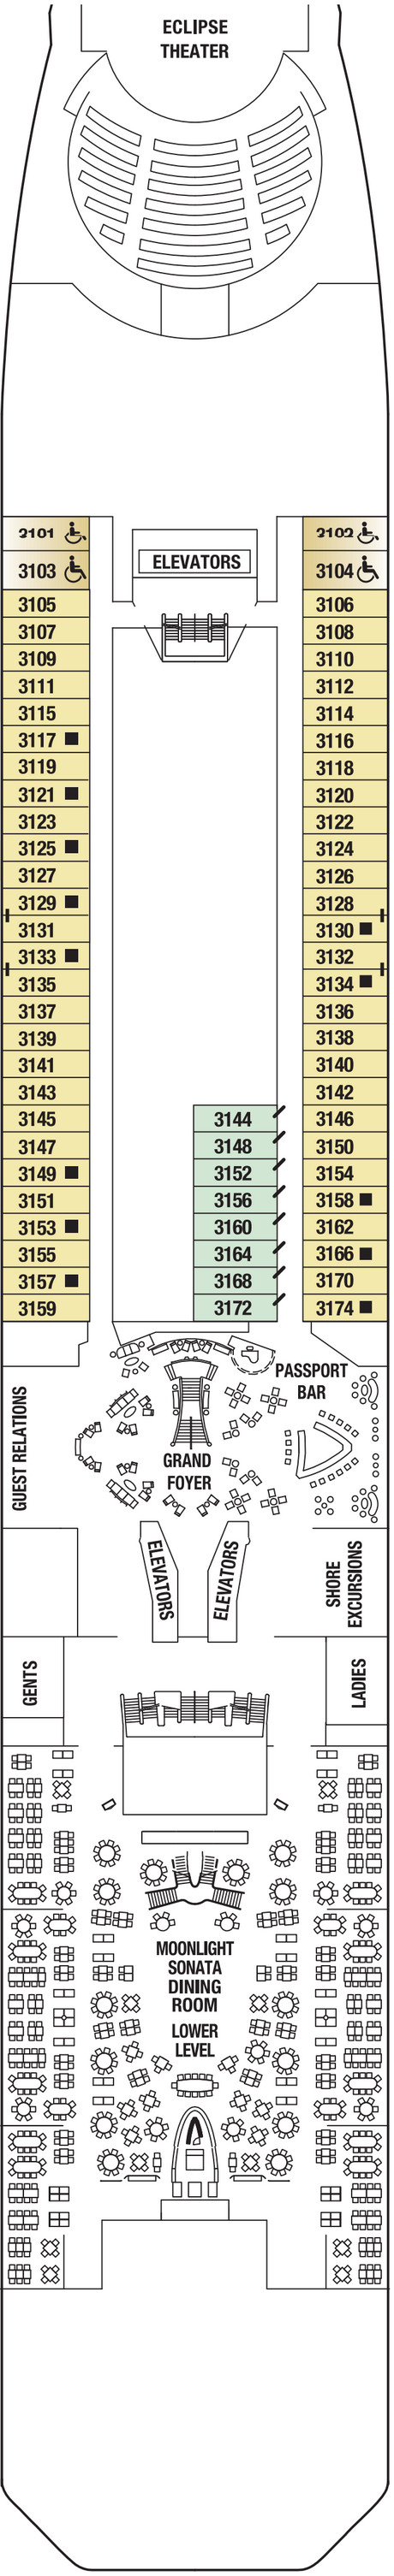 Celebrity Eclipse Plaza Deck  layout